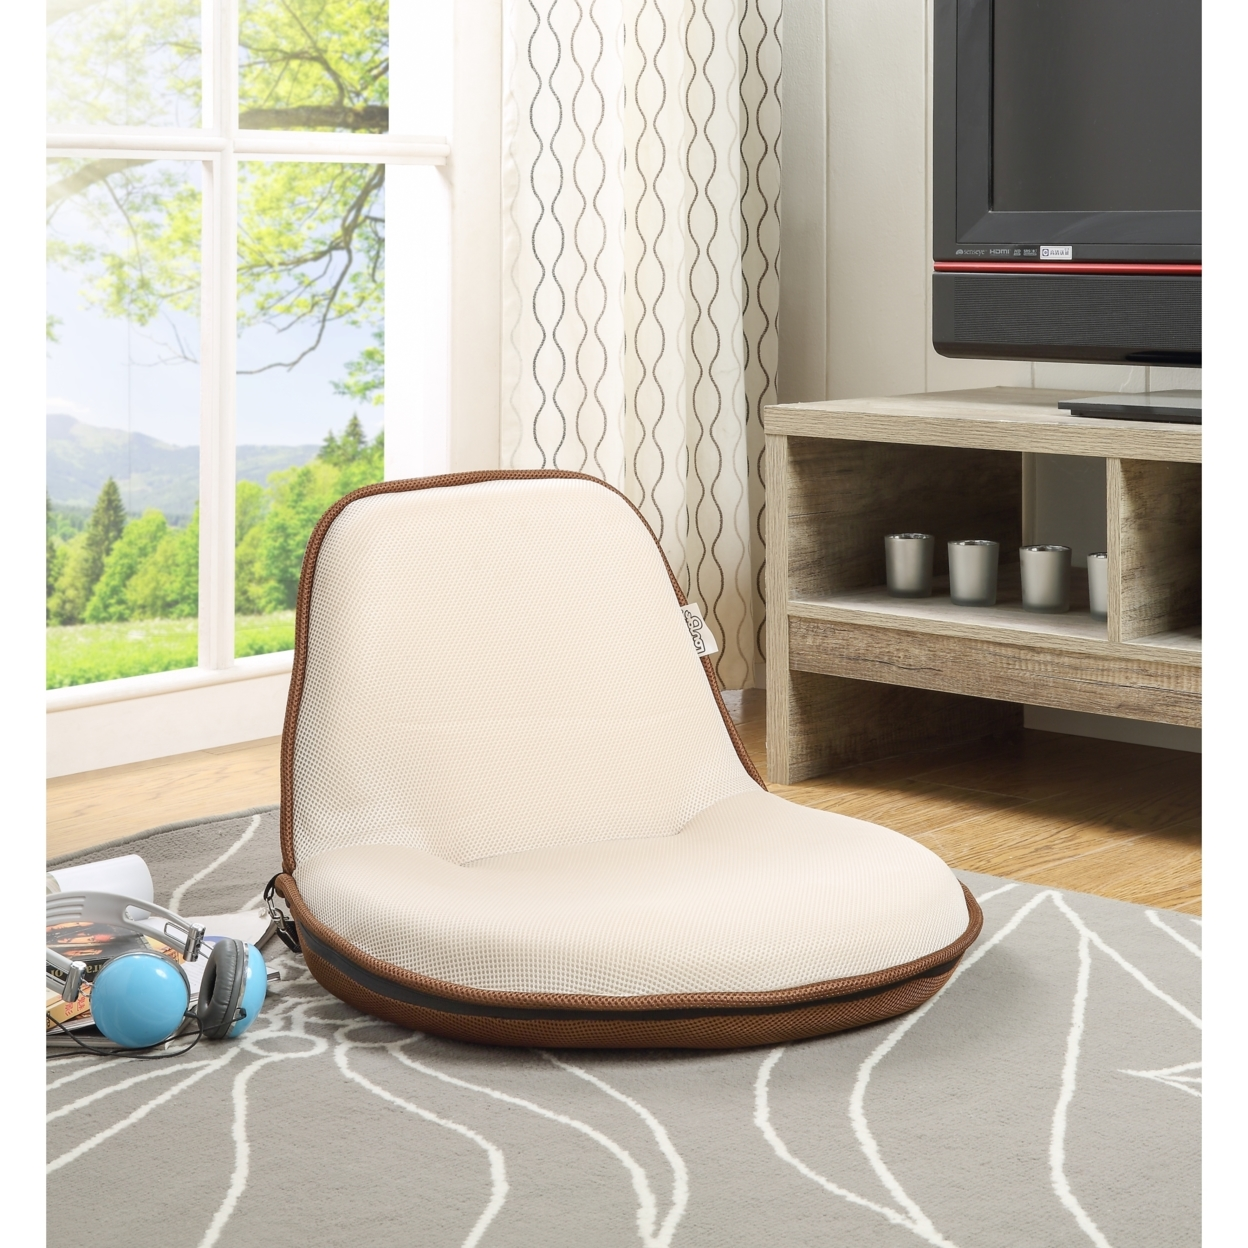 Us 76 05 Loungie Quickchair Mesh Floor Chair Foldable Portable With Strap Indoor Outdoor By Inspired Home In Living Room Chairs From Furniture